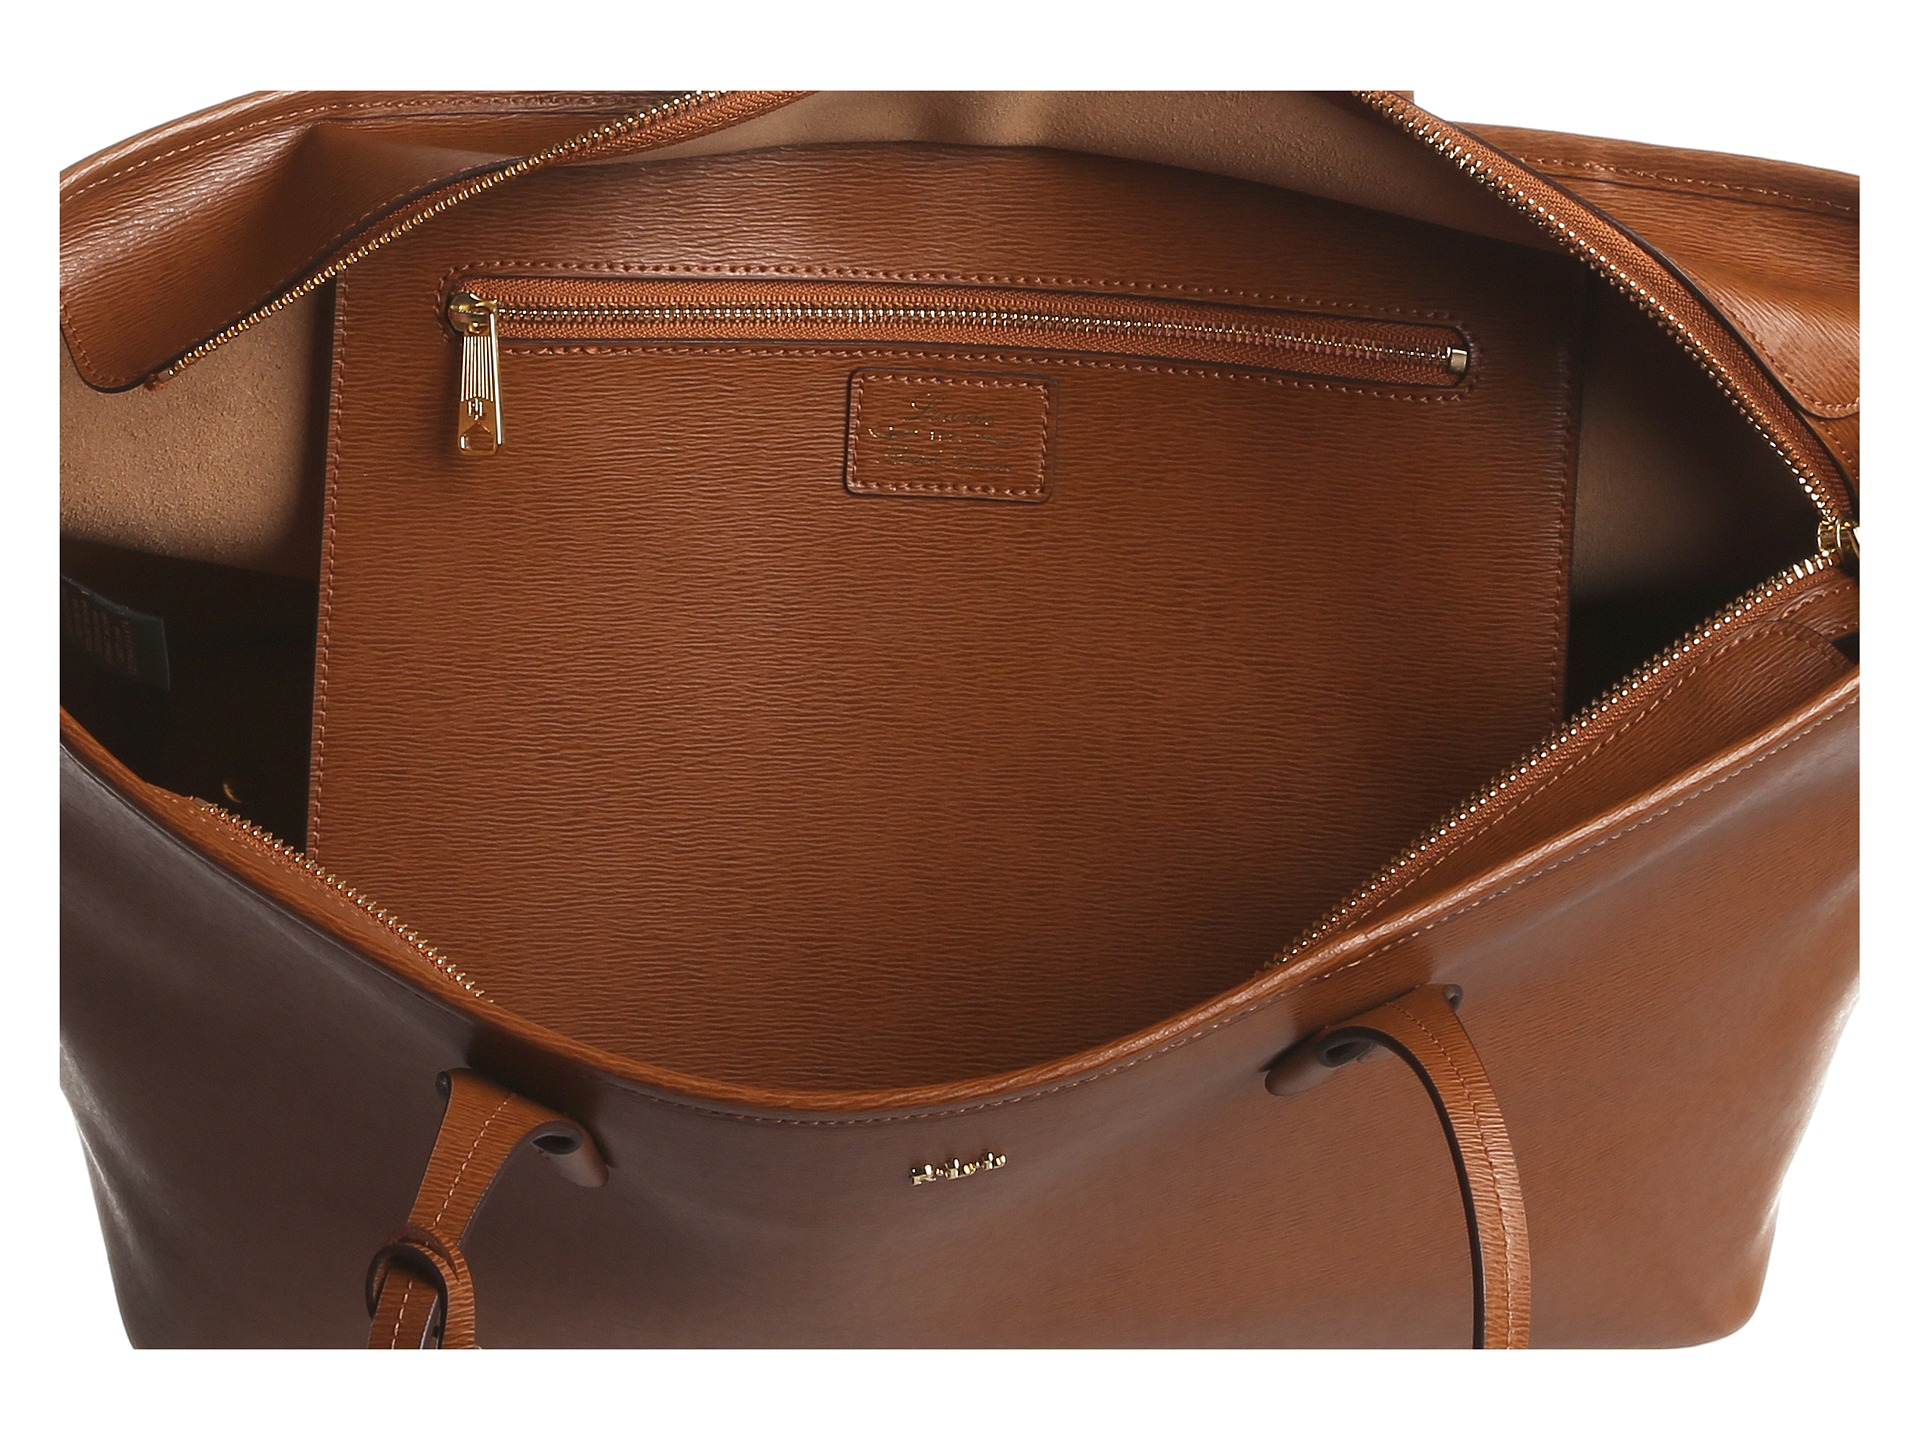 Lyst - Lauren by Ralph Lauren Tate Classic Tote in Brown 1e77a5116b7b3